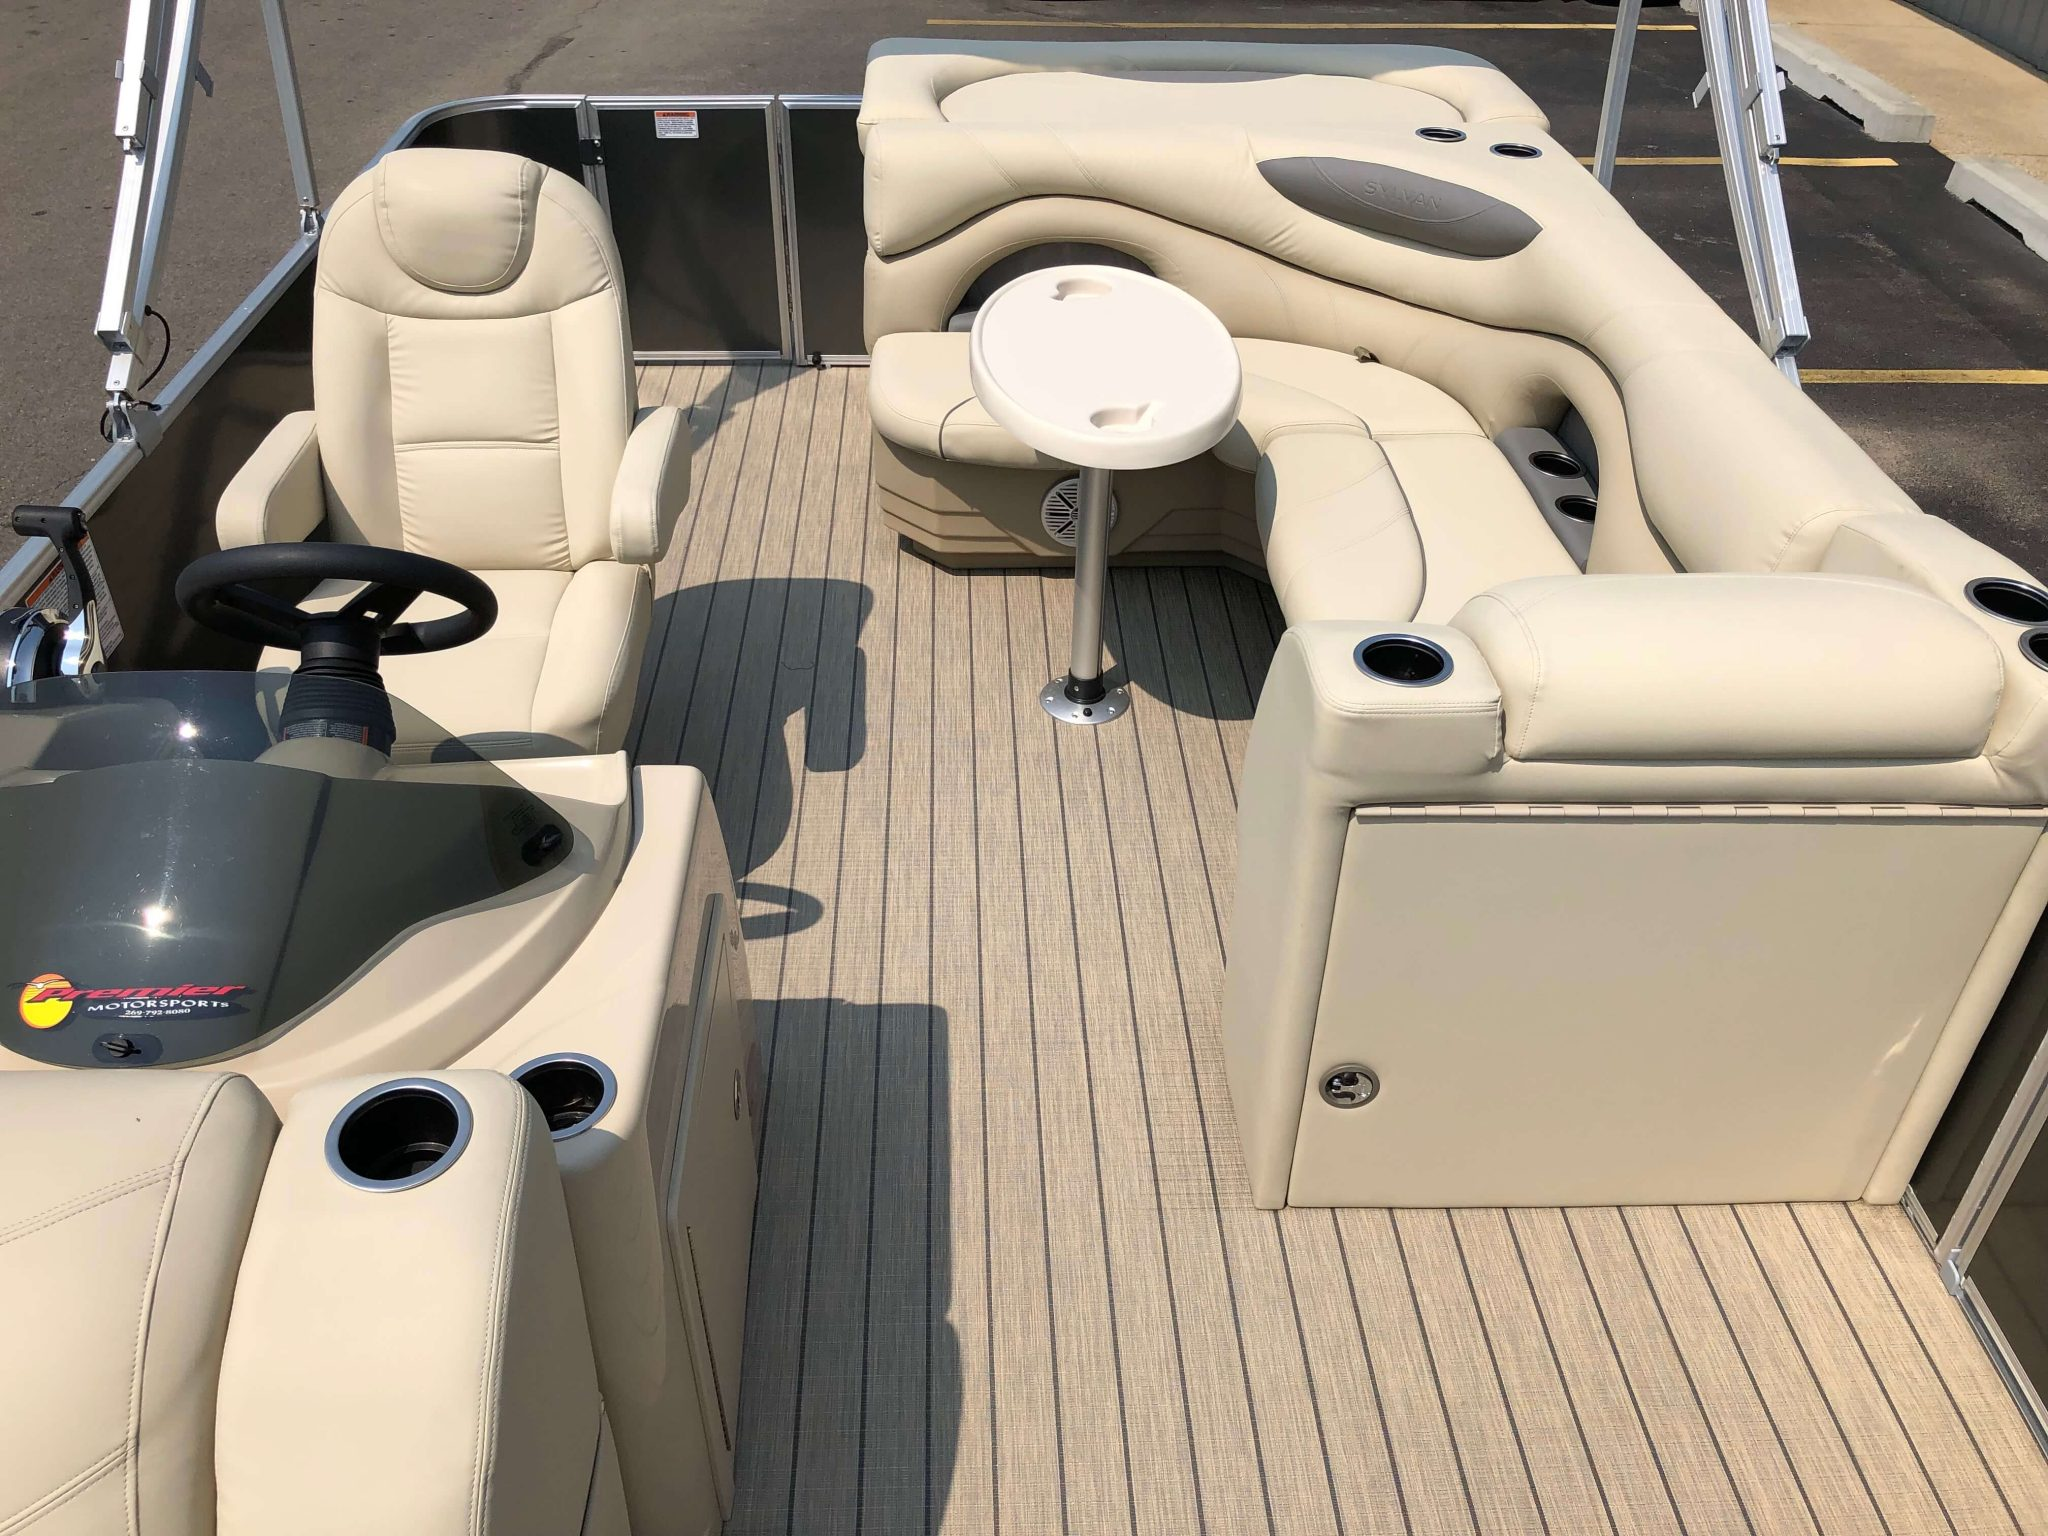 2019 Sylvan 8522 Cruise Carbon Pontoon Boat Layout 4